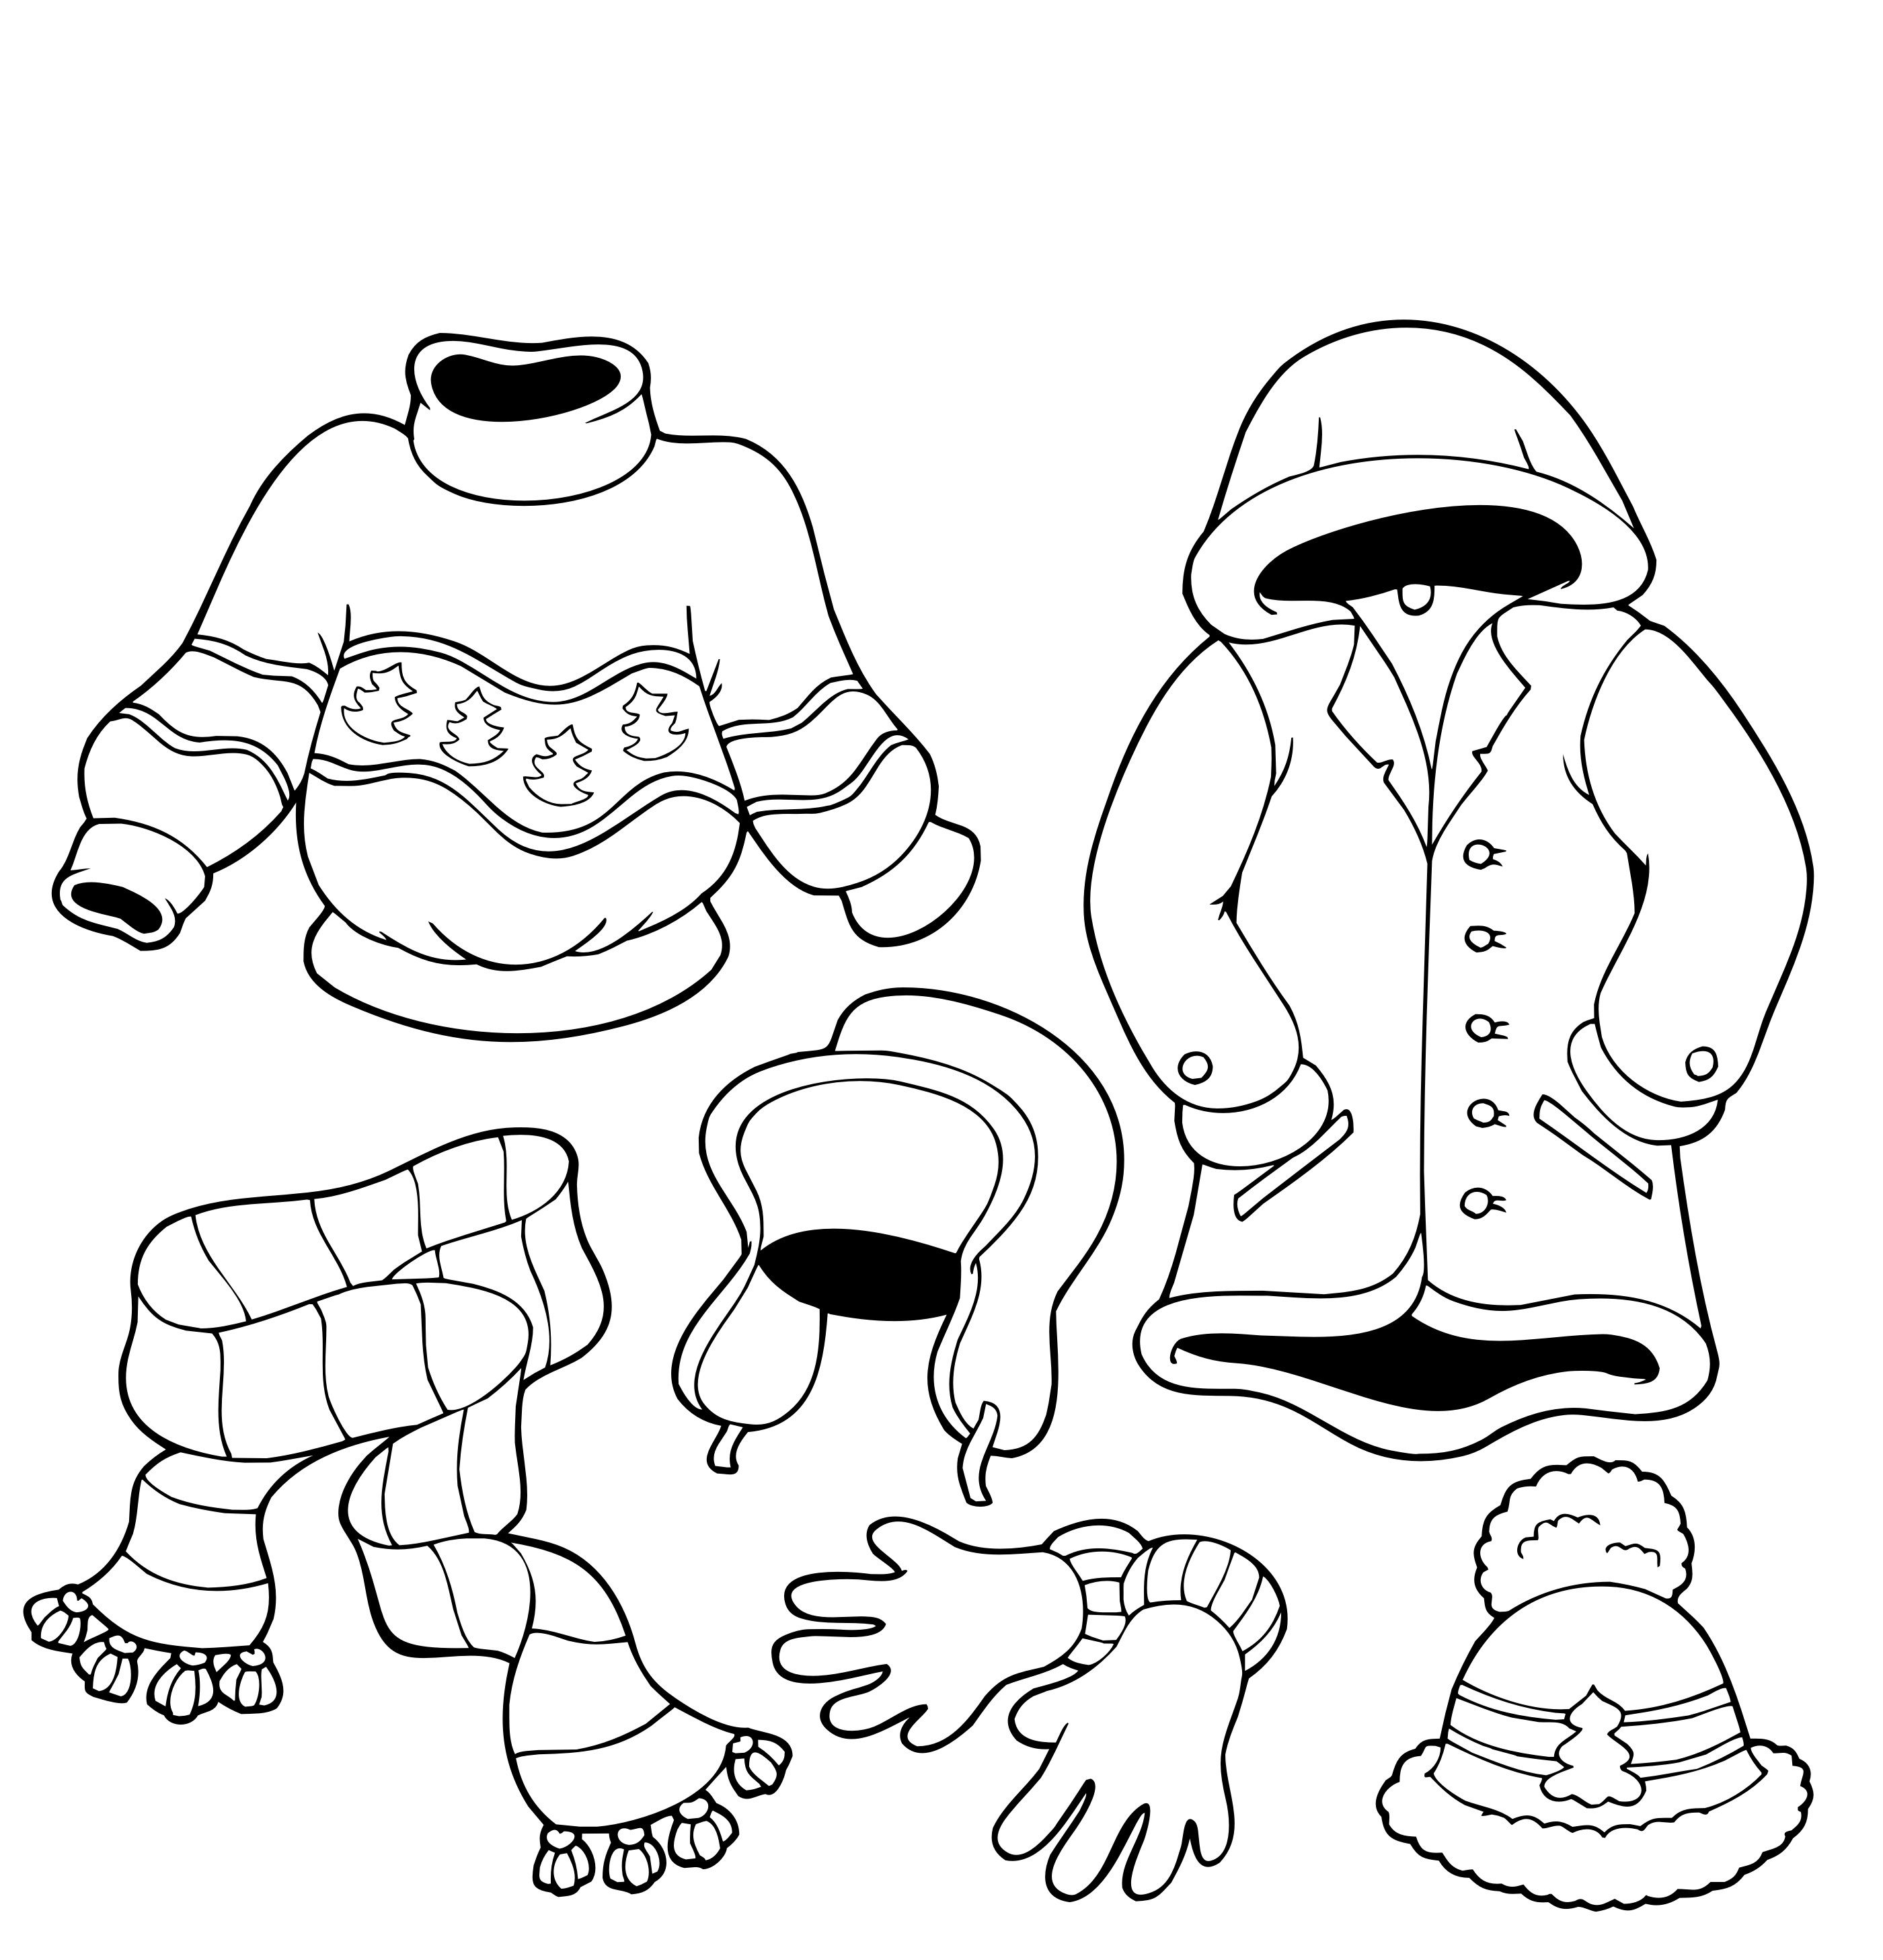 Free Printable Winter Coloring Pages For Kids | coloring_pages ...